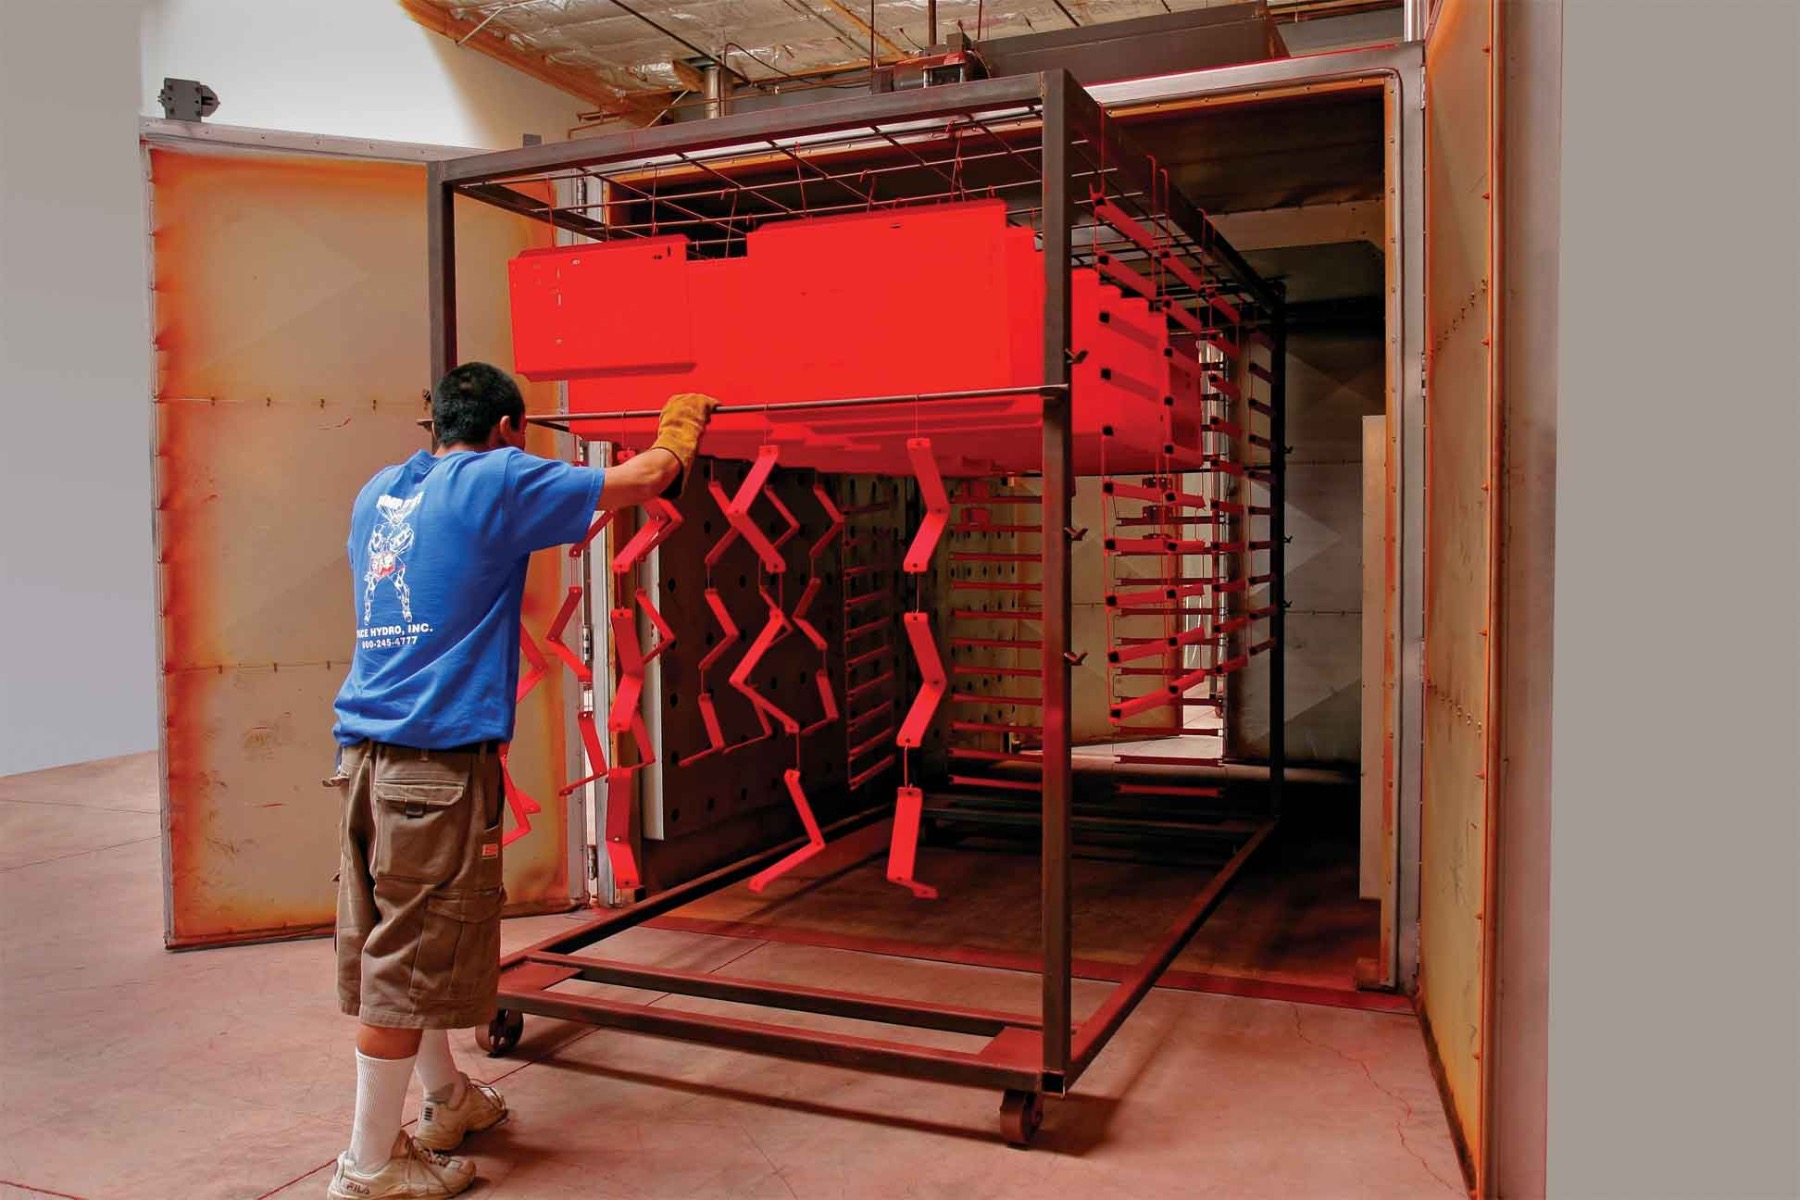 Products being powder coated in a powder coating oven